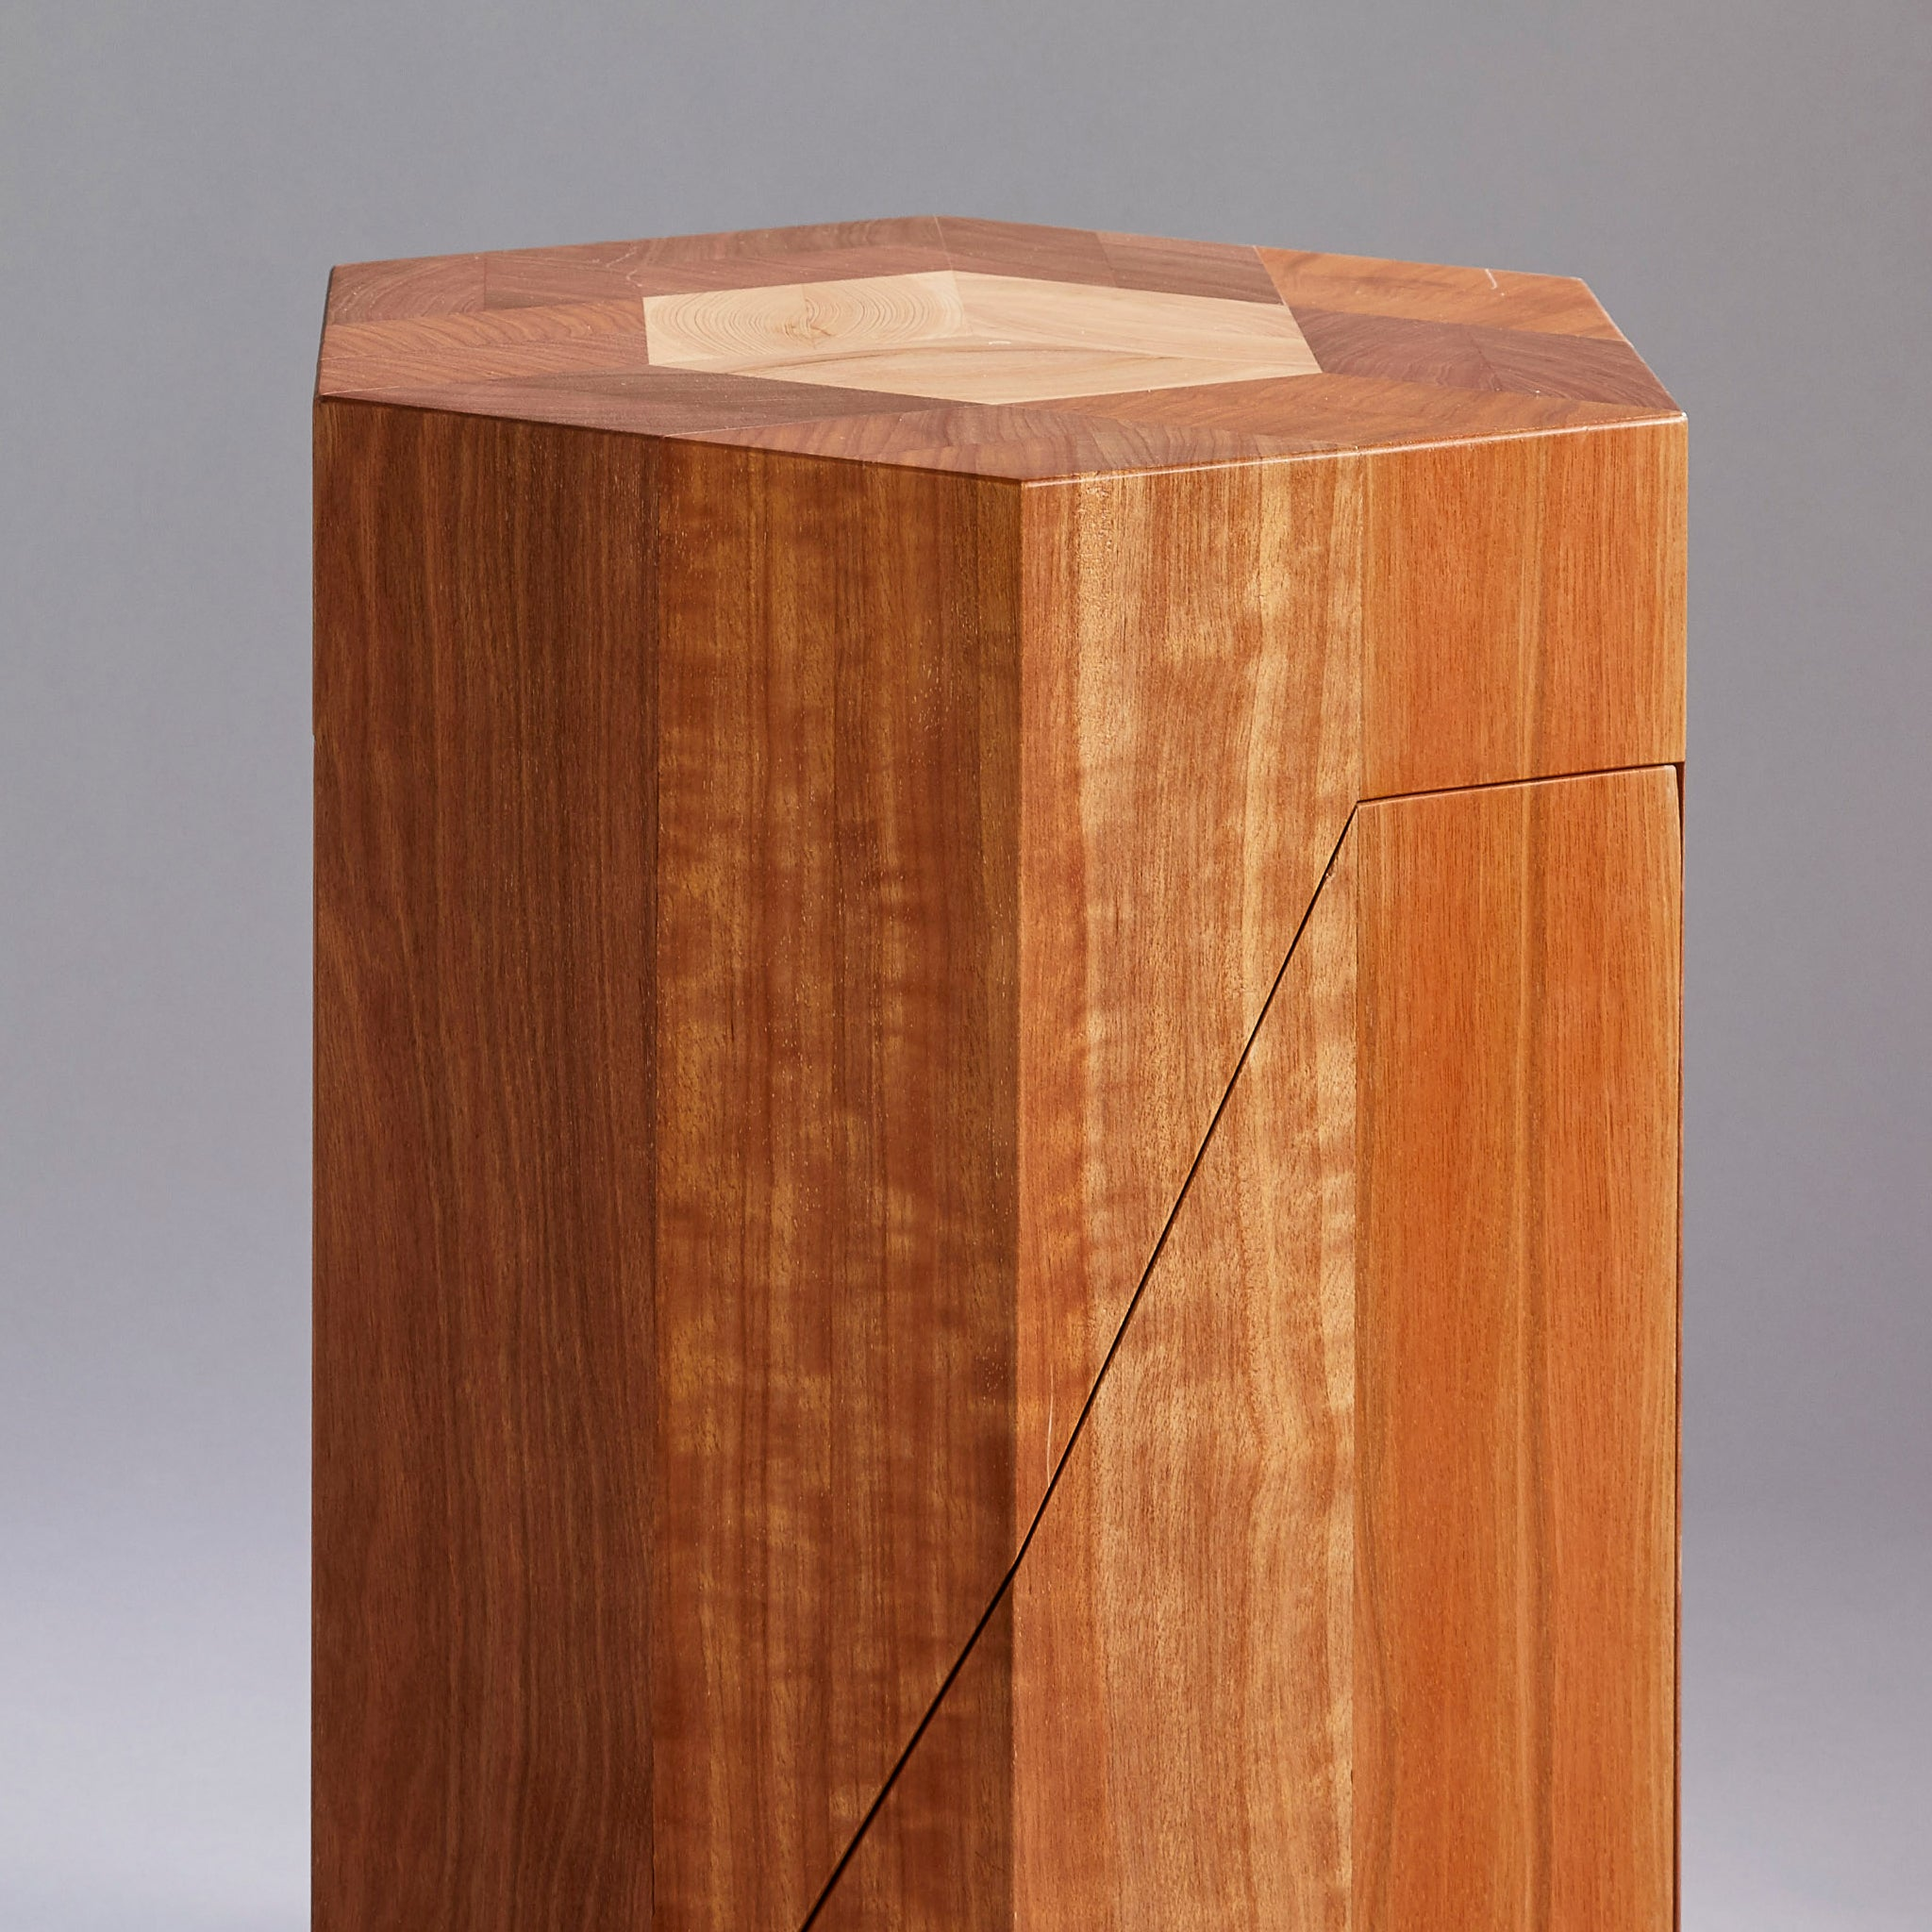 Yosegi Pair Stool | Japanese Modern Furniture-Furniture-Yoshiaki Ito Design